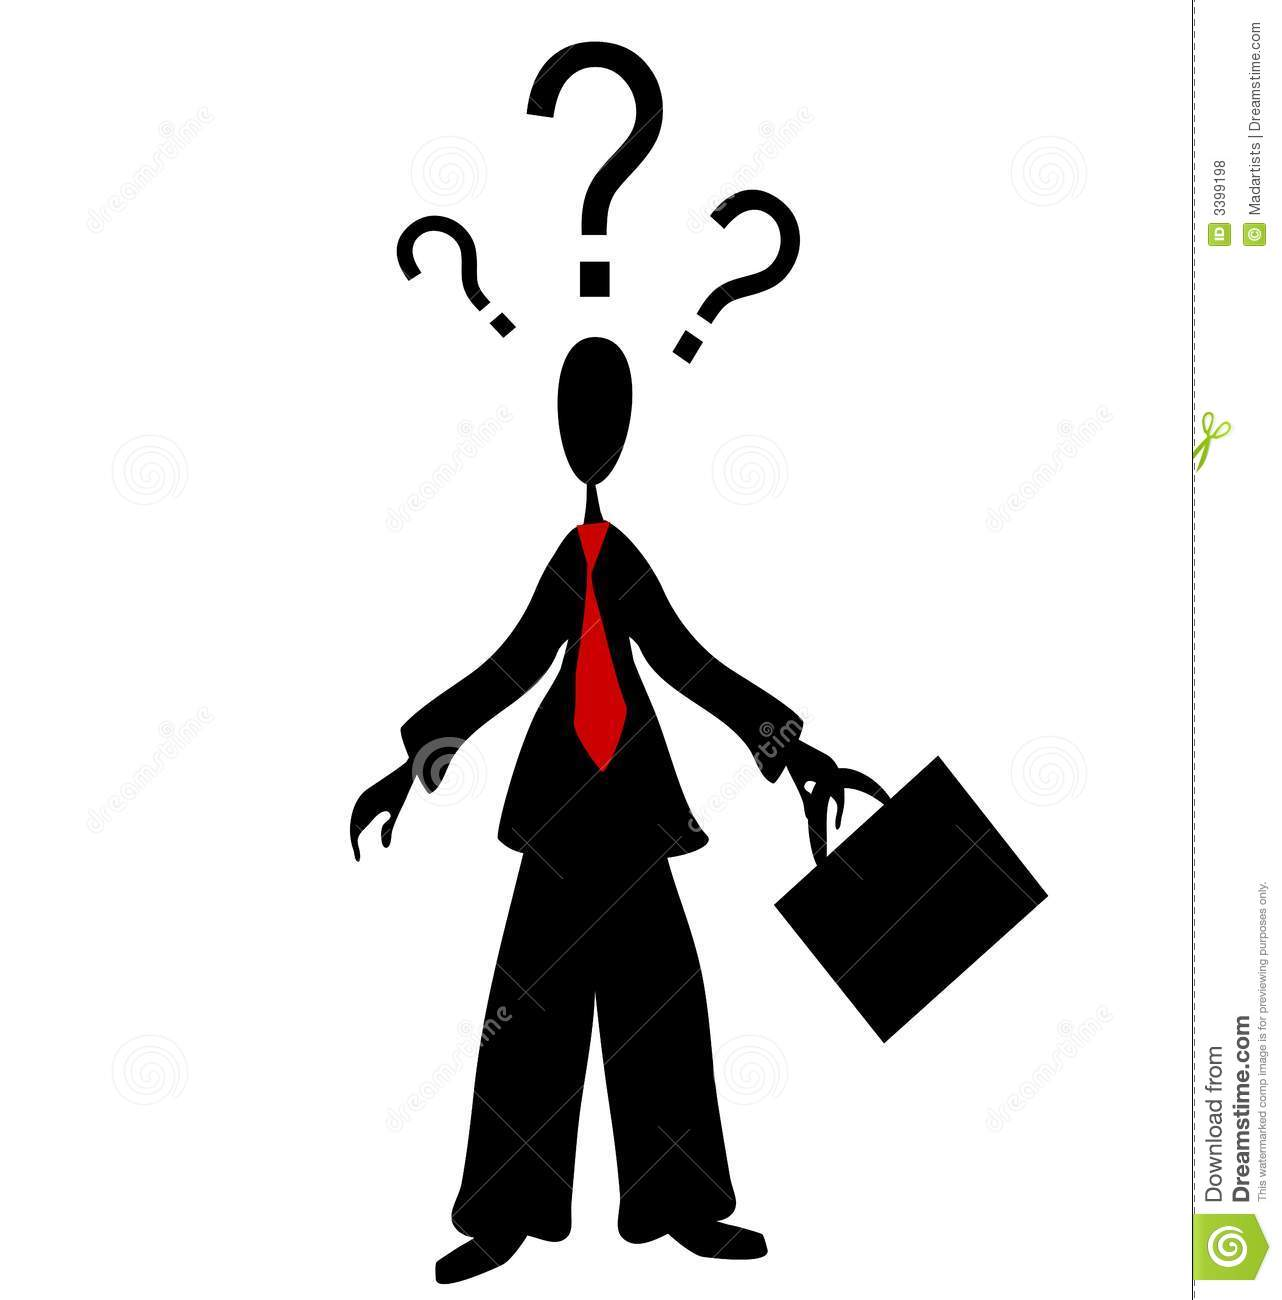 Pics photos clip art cartoon scientist with question mark stock - Interrogation 20clipart